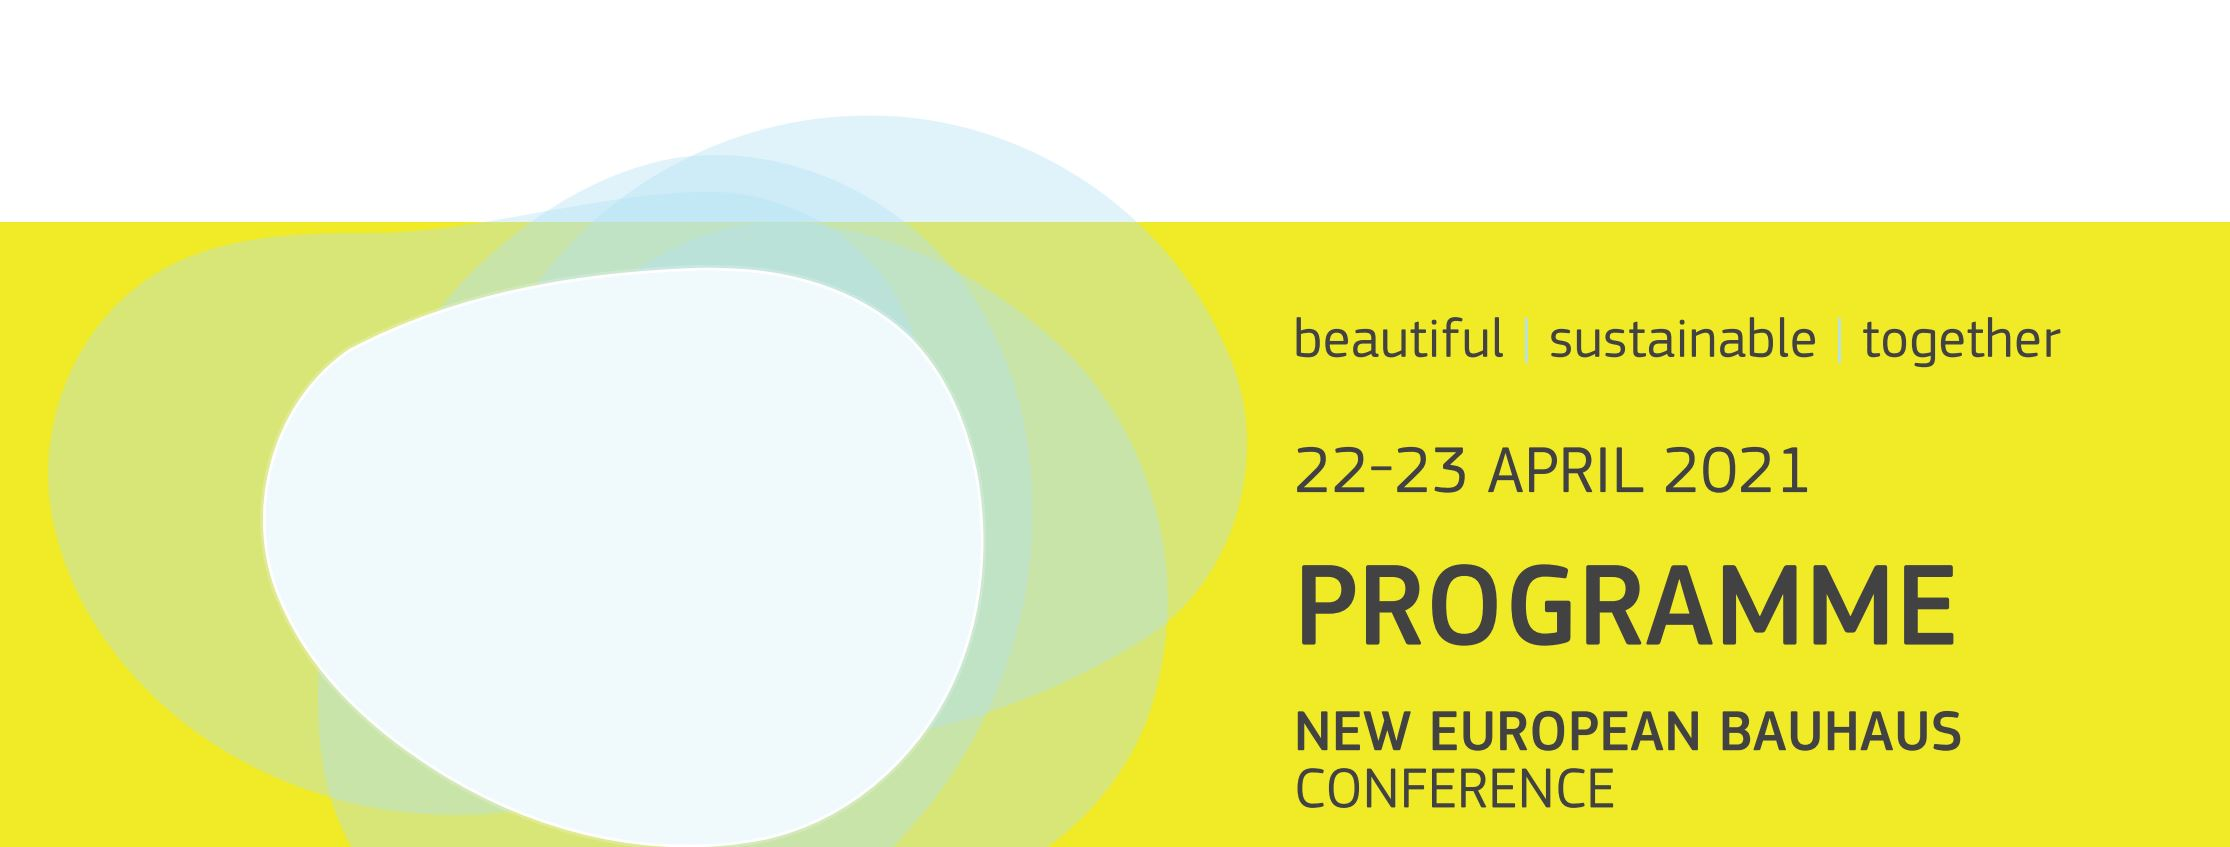 The New European Bauhaus conference